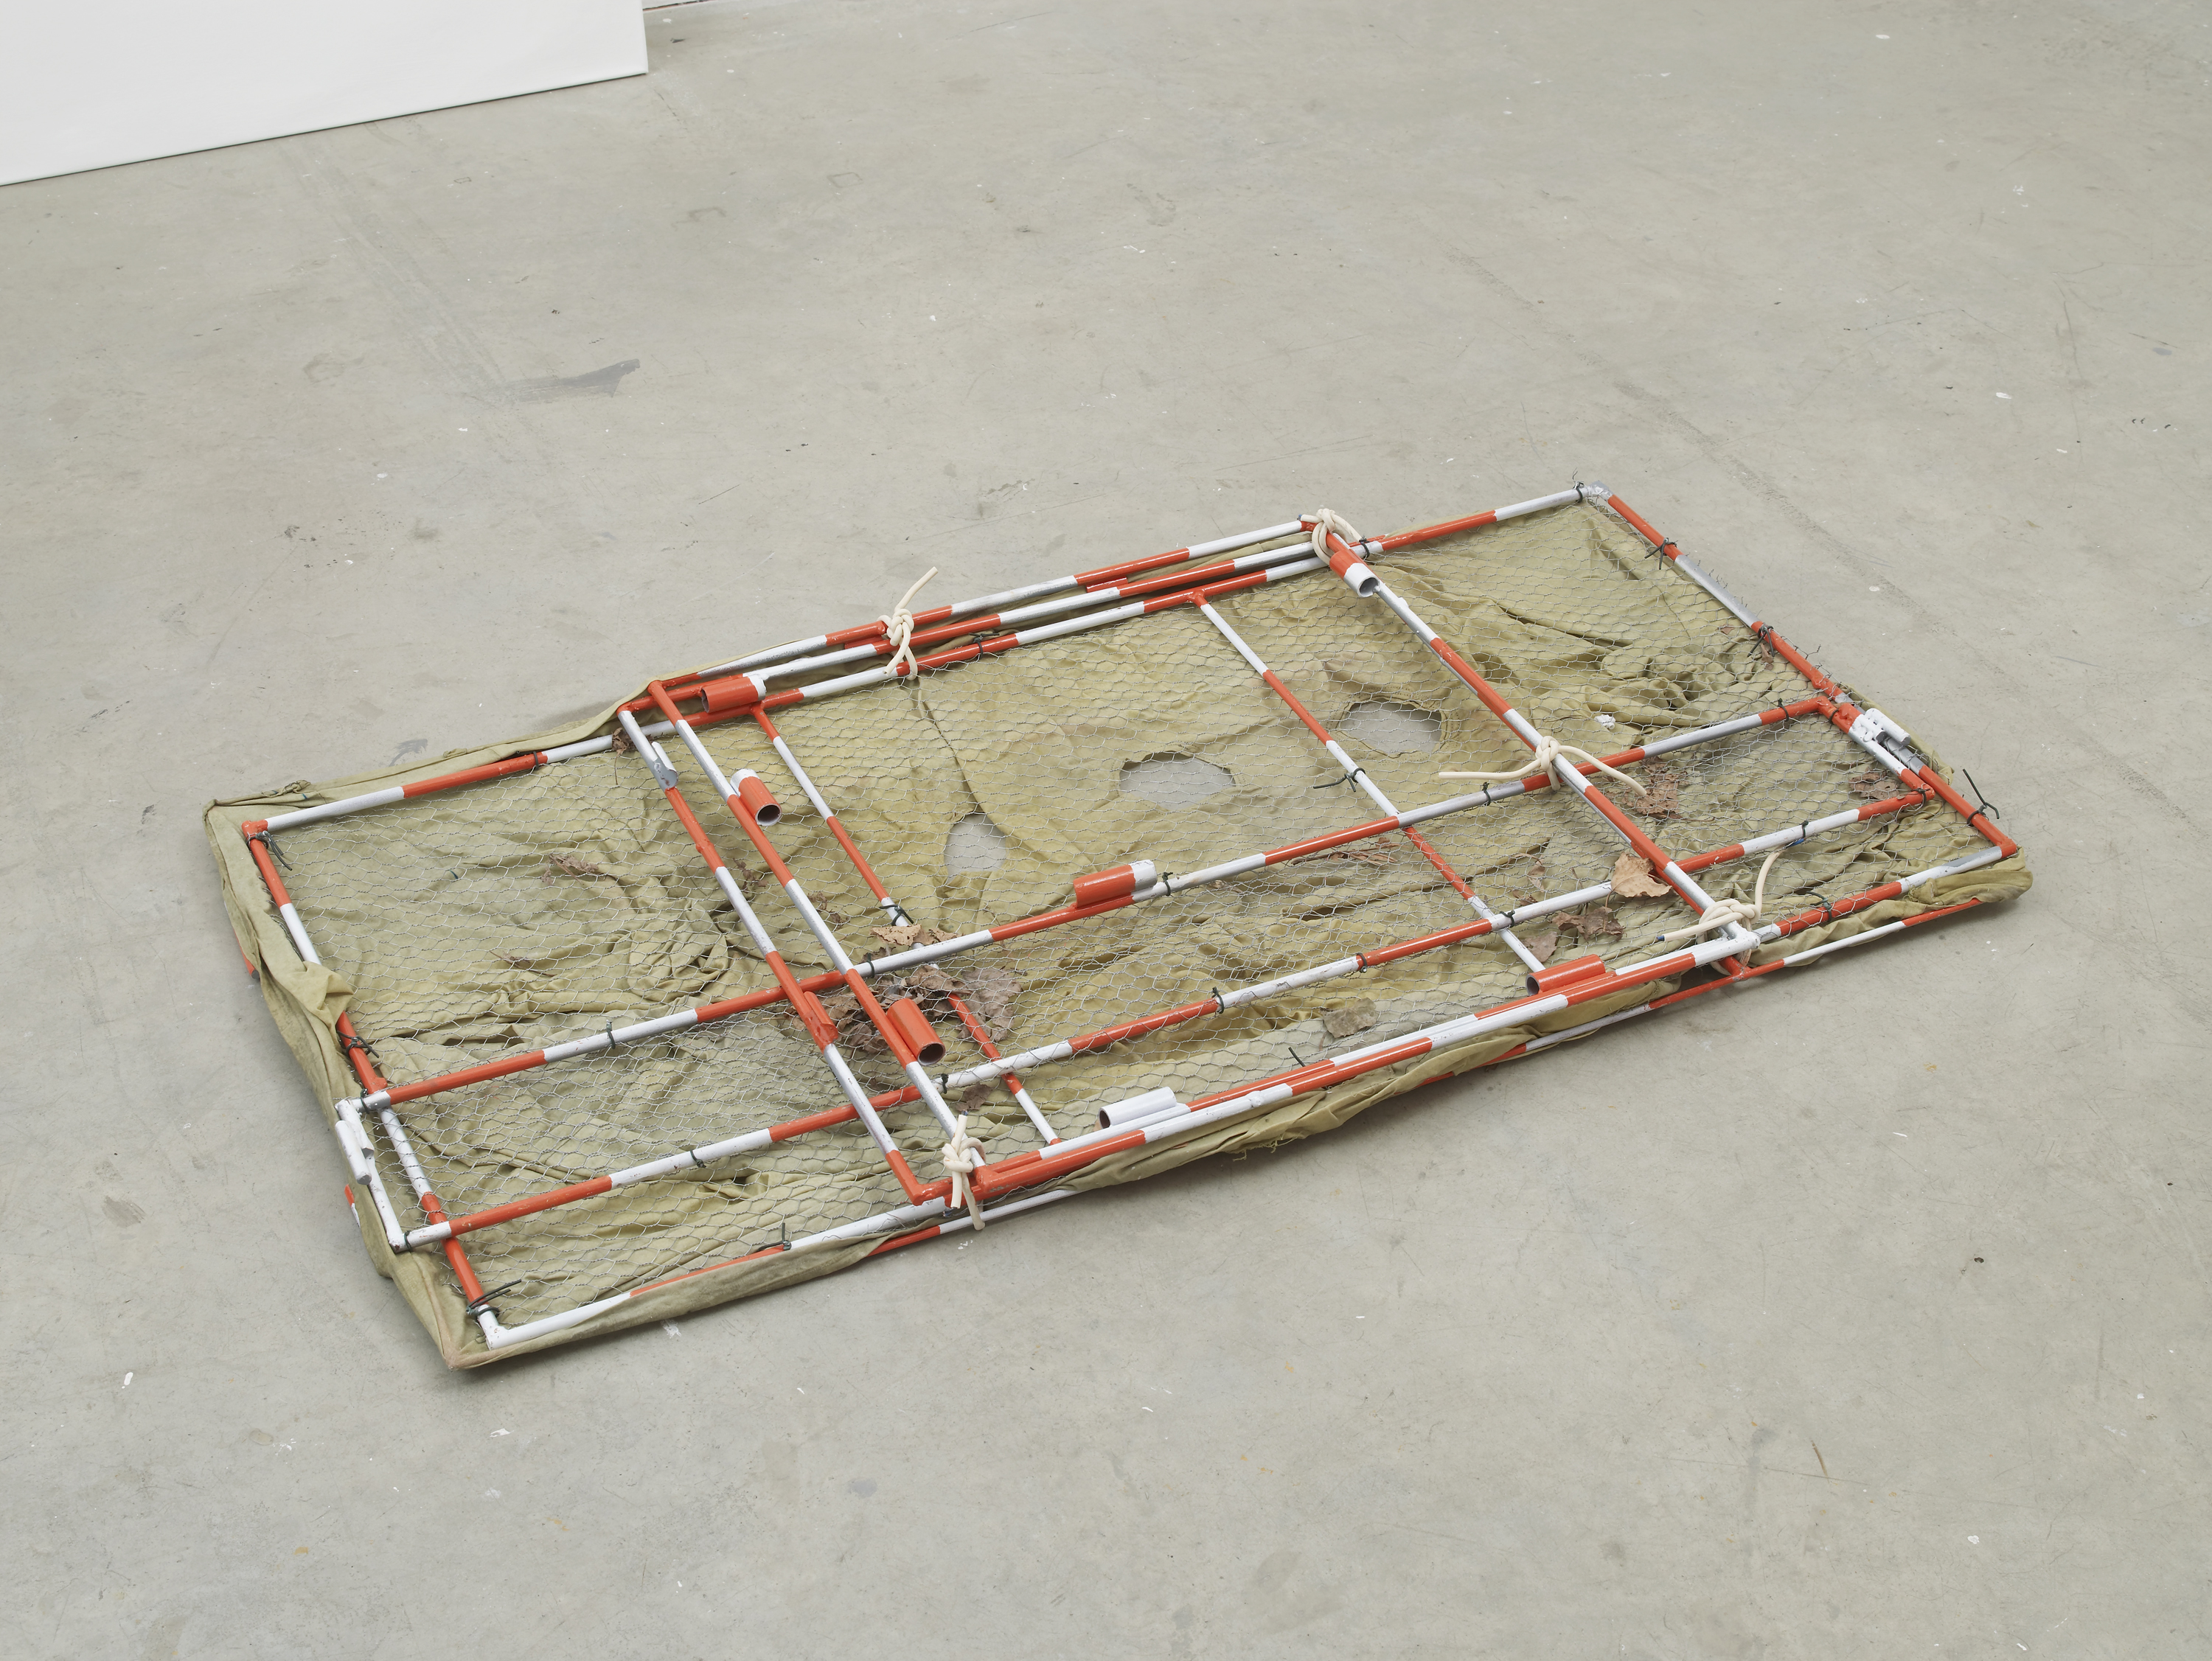 Stuart Middleton, Untitled, 2016  steel, paint, chicken wire, oil cloth , 5 x 64 x 124 cm, 2 x 25 1/4 x 48 7/8 ins. Being There Organised by Matt Williams , NeÏl Beloufa,  Hannah Black,  Eliza Douglas,  Klara Lidén,  Colin Lowe & Roddy Thomson,  Stuart Middleton and Avery Singer